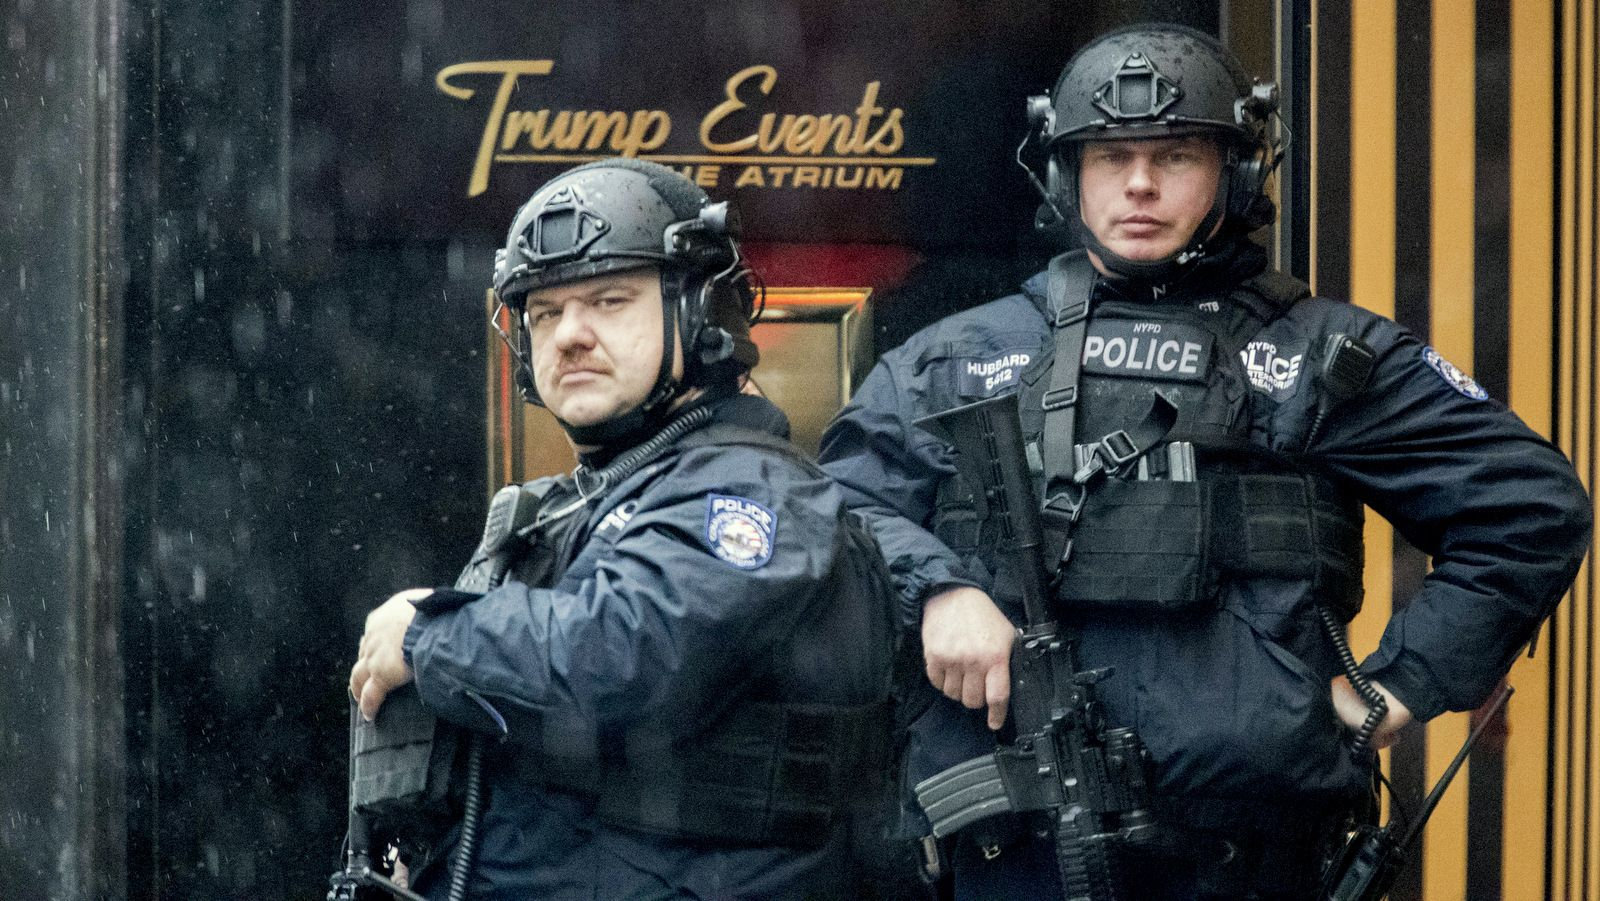 Heavily armed police officers stand guard in the rain outside Trump Tower, Tuesday, Nov. 29, 2016, in New York. (AP Photo/Mary Altaffer)